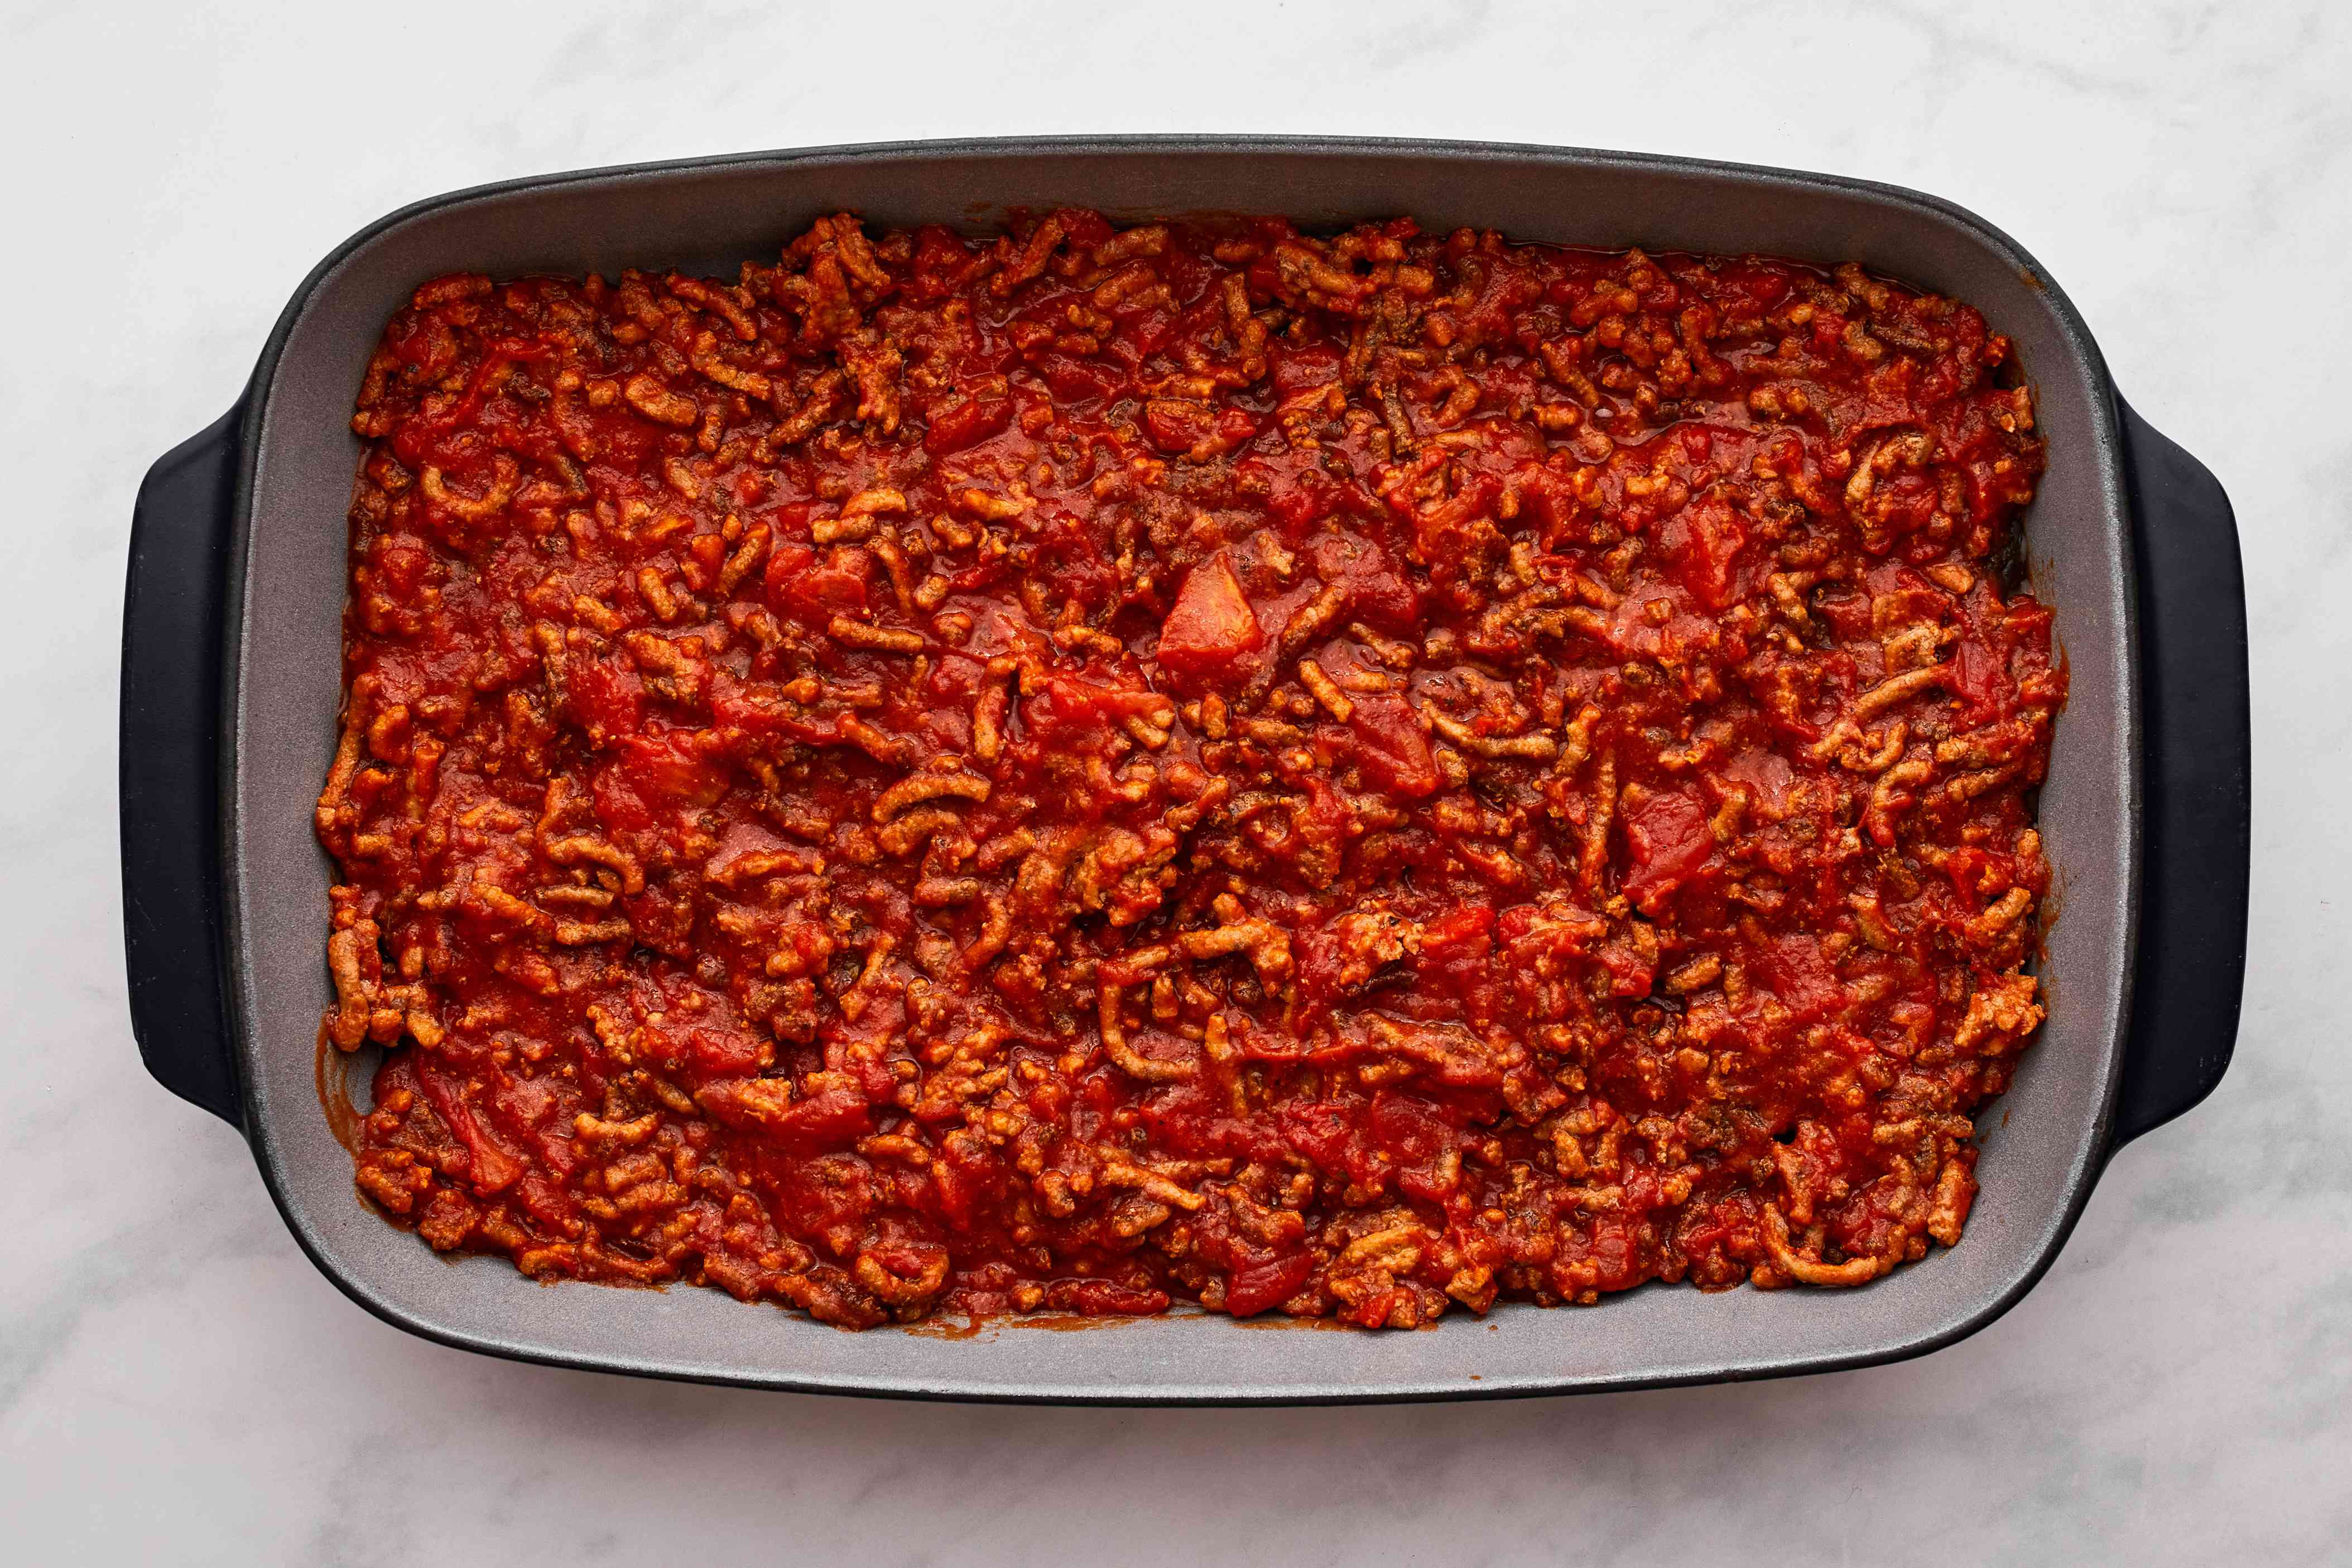 Spread the meat sauce mixture over the eggplant